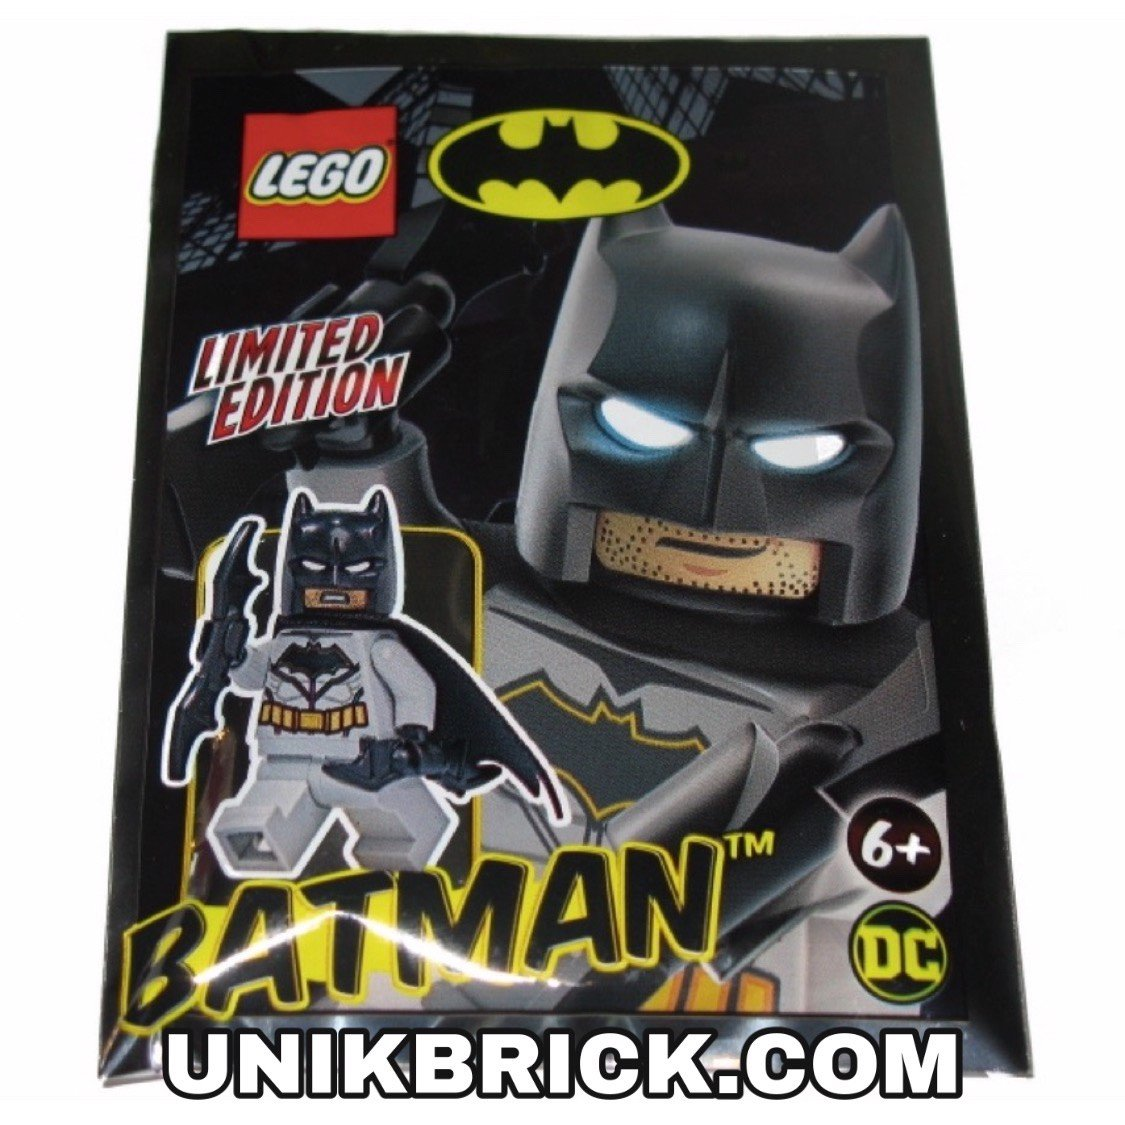 LEGO DC 211901 Batman Foil Pack Polybag